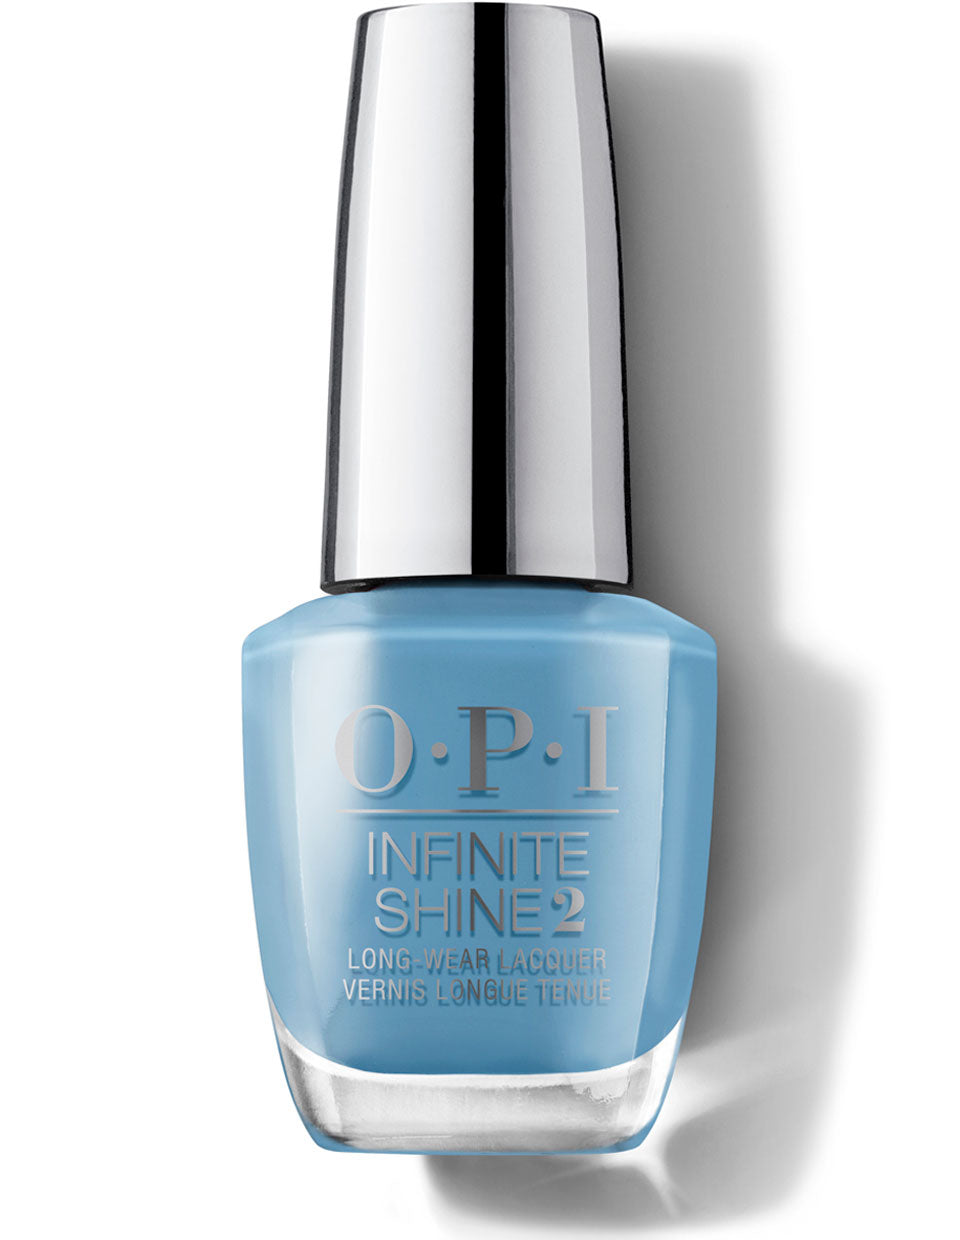 O.P.I Infinite Shine 2 Long Wear Lacquer OPI Grabs The Unicorn By The Horn 15mL